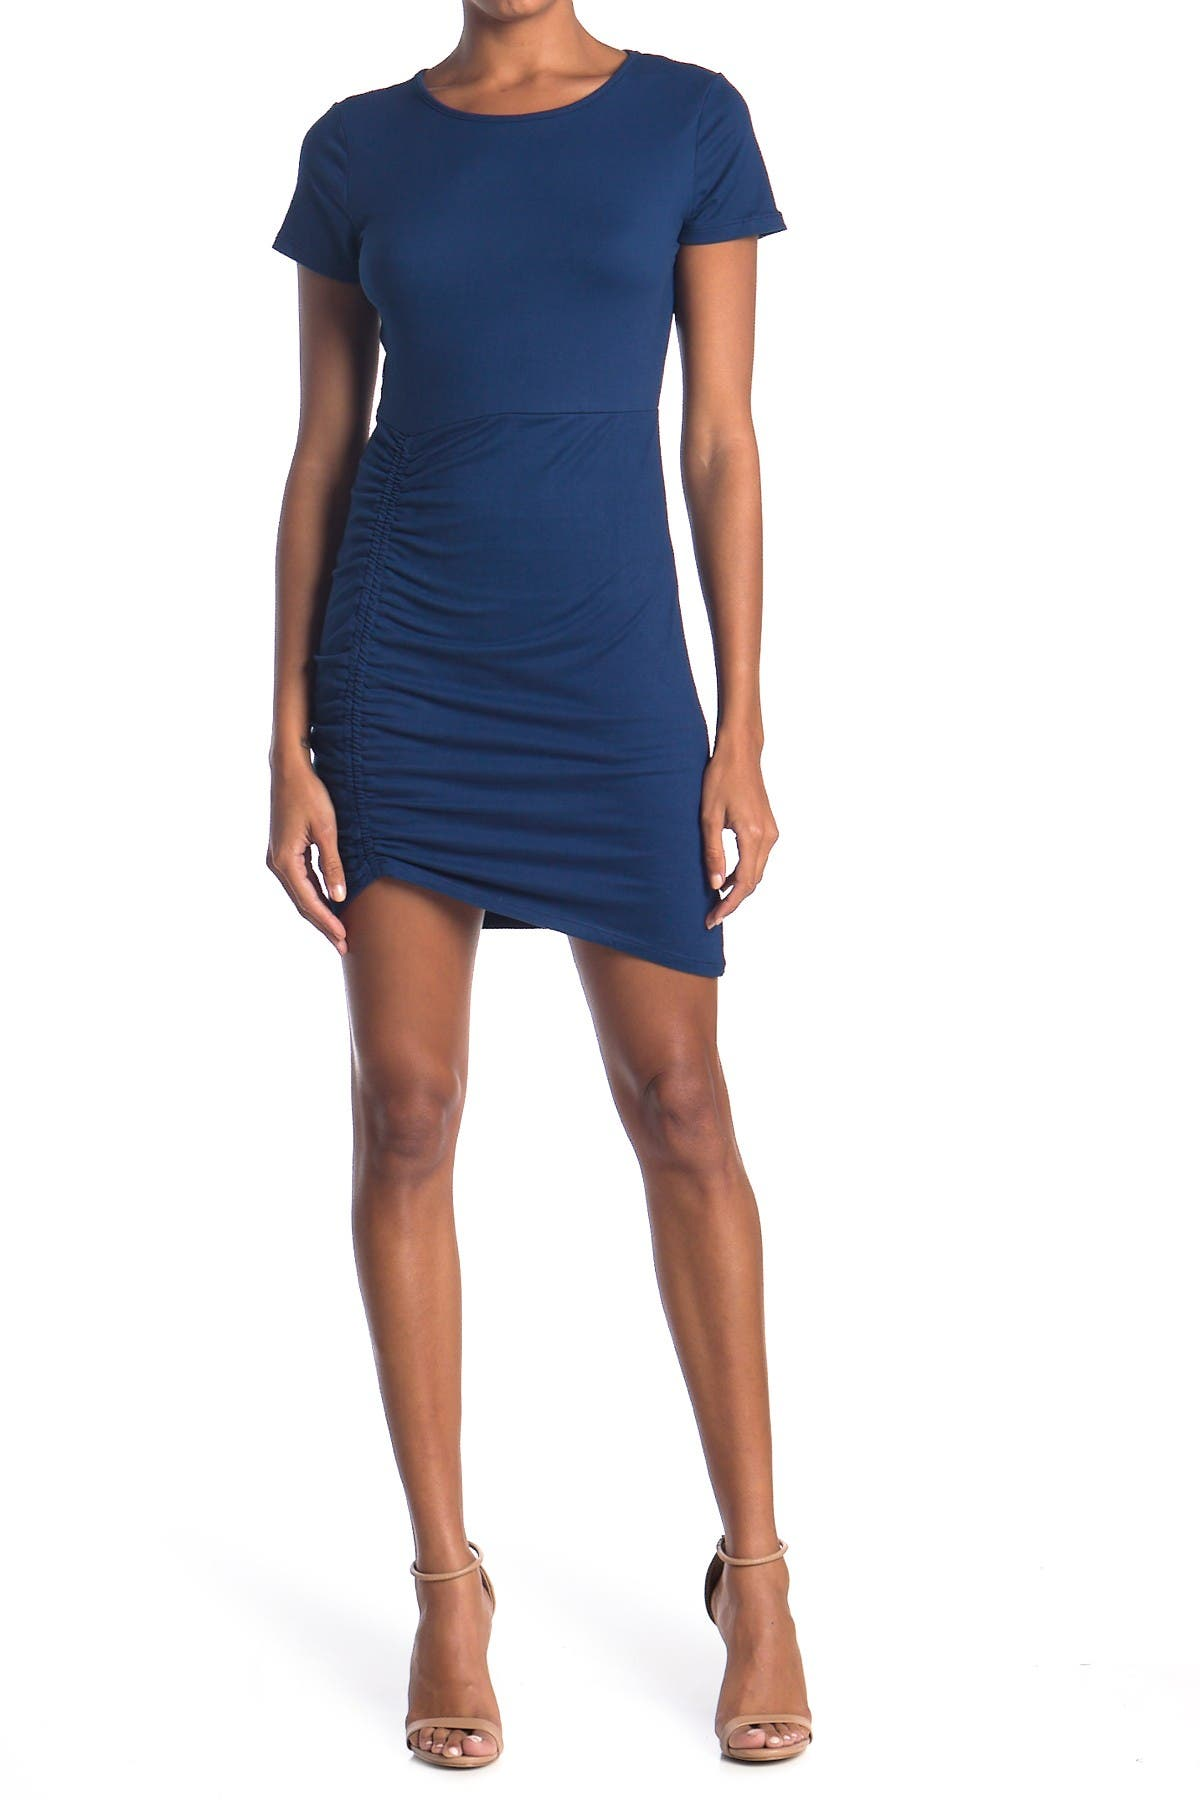 Image of Vanity Room Ruched Side Bodycon T-Shirt Dress